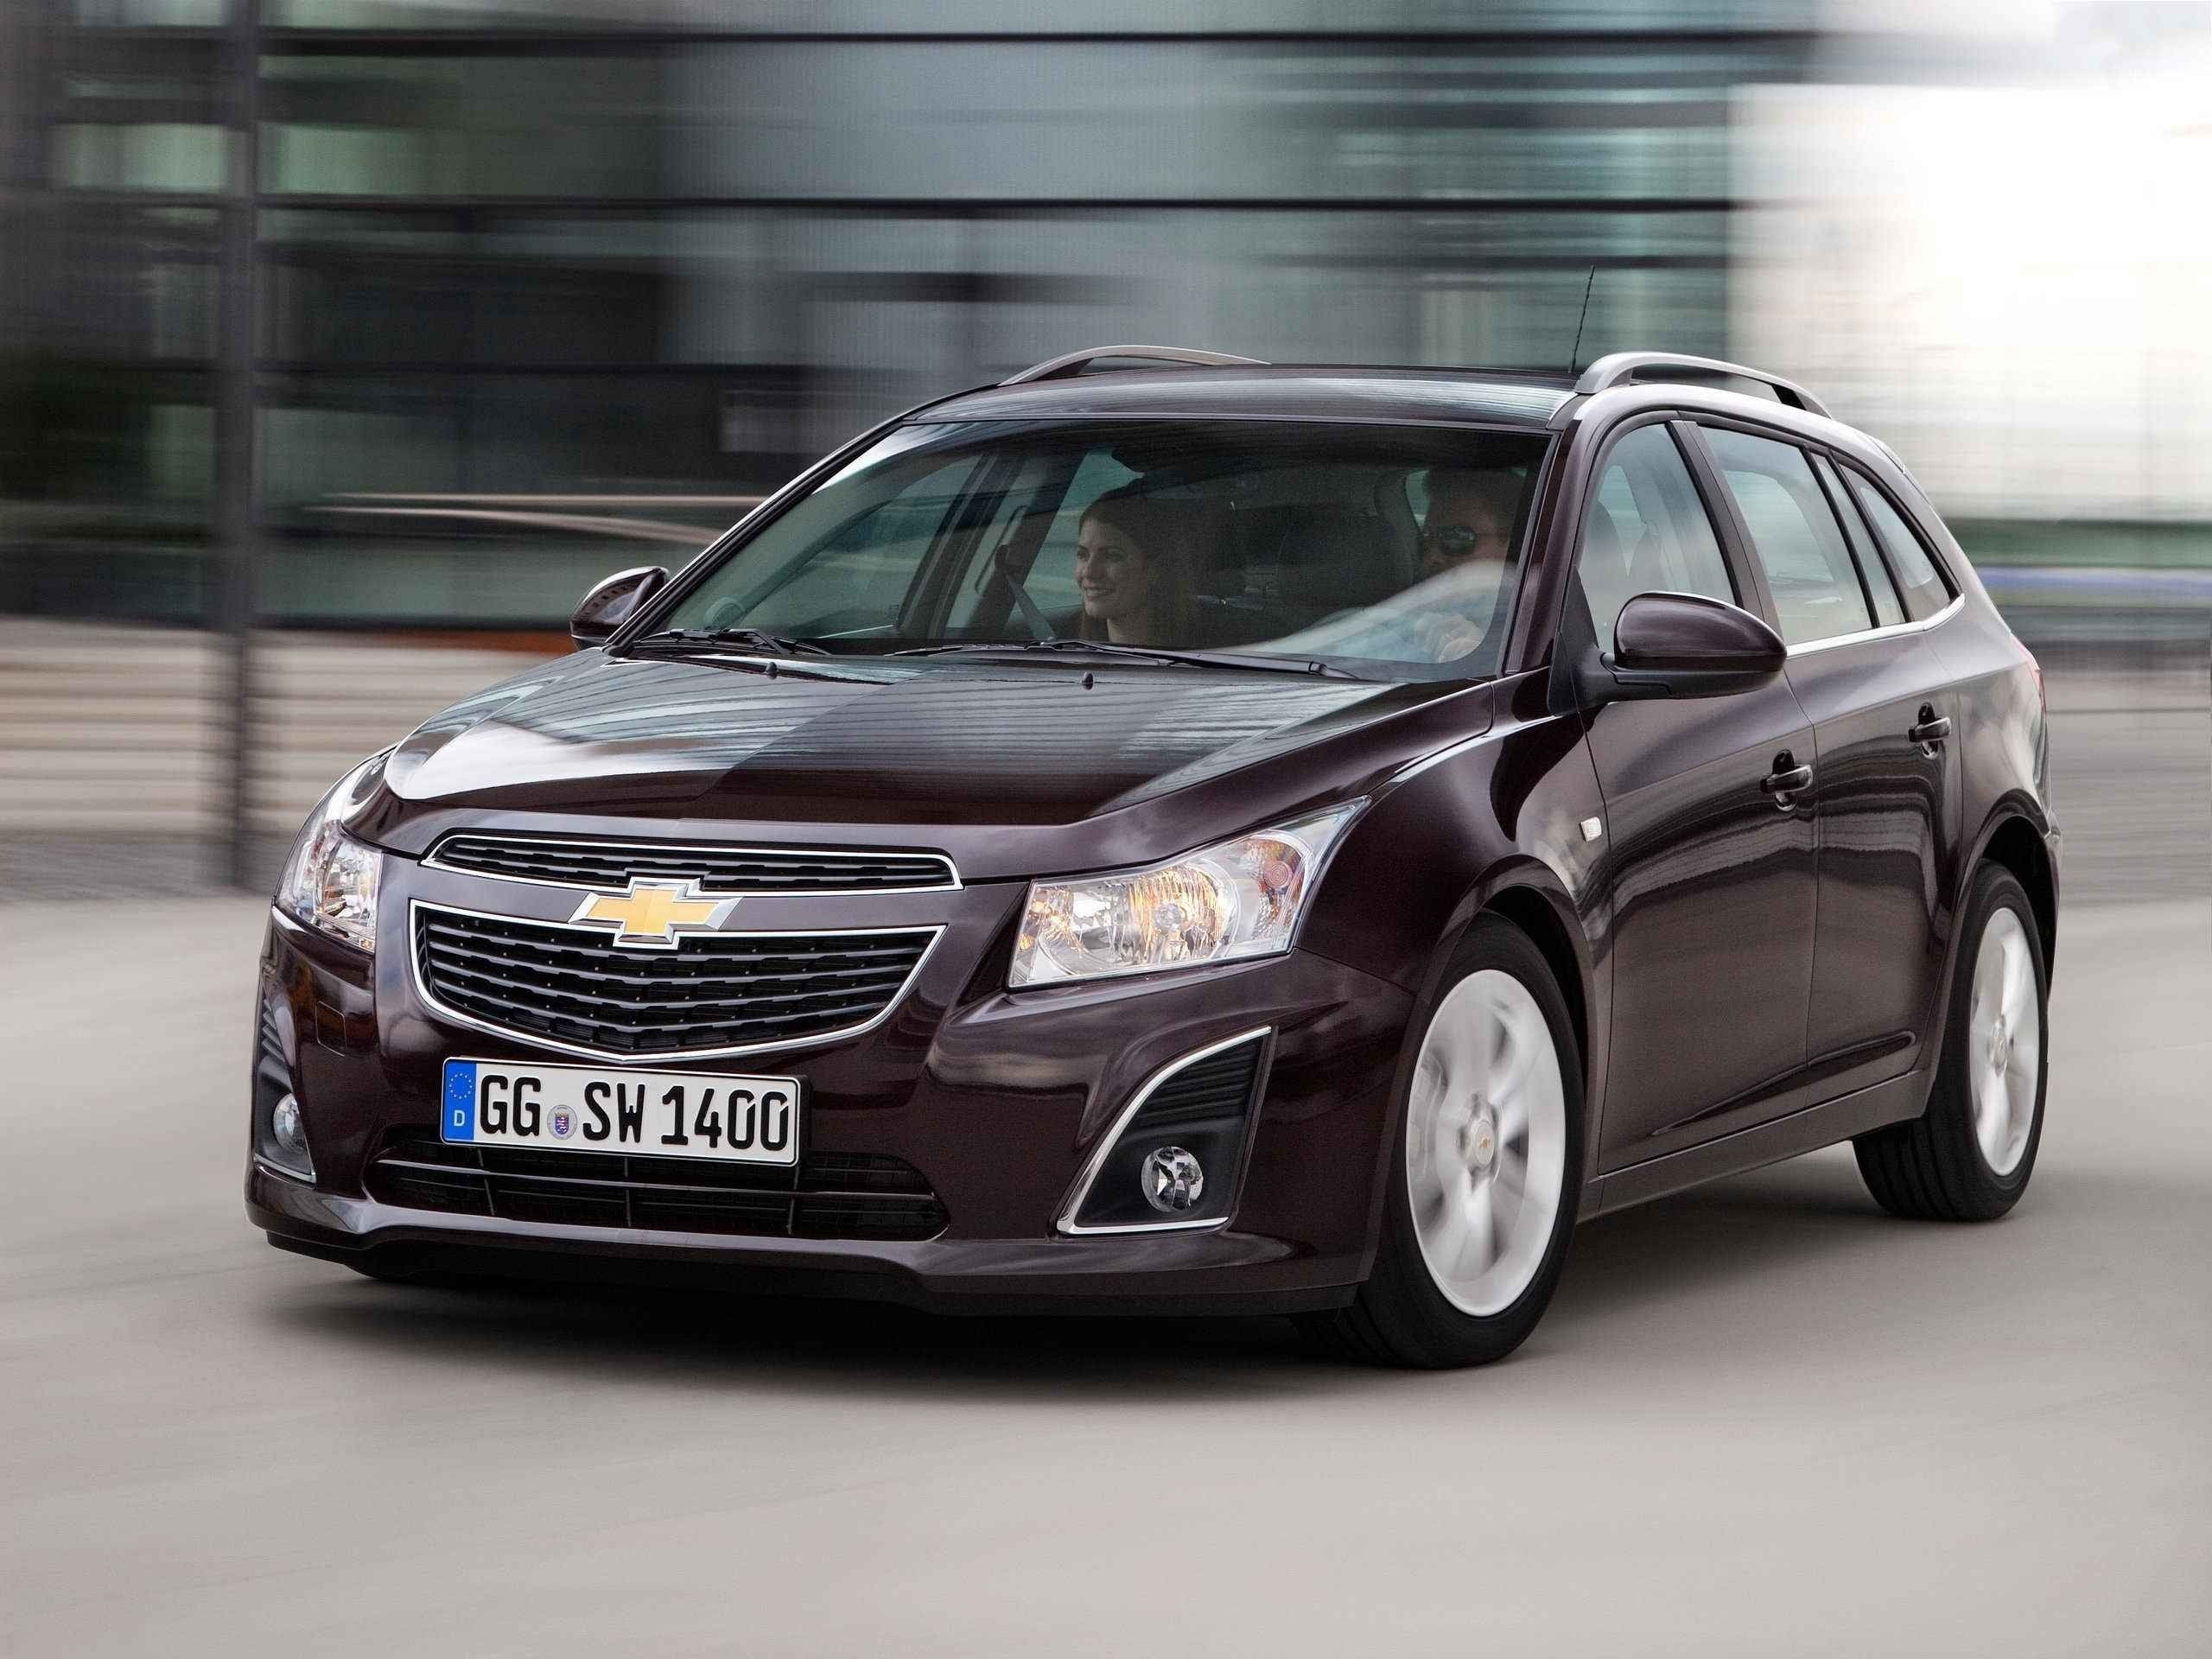 12 Great Chevy Cruze Wallpapers Reviews with Chevy Cruze Wallpapers